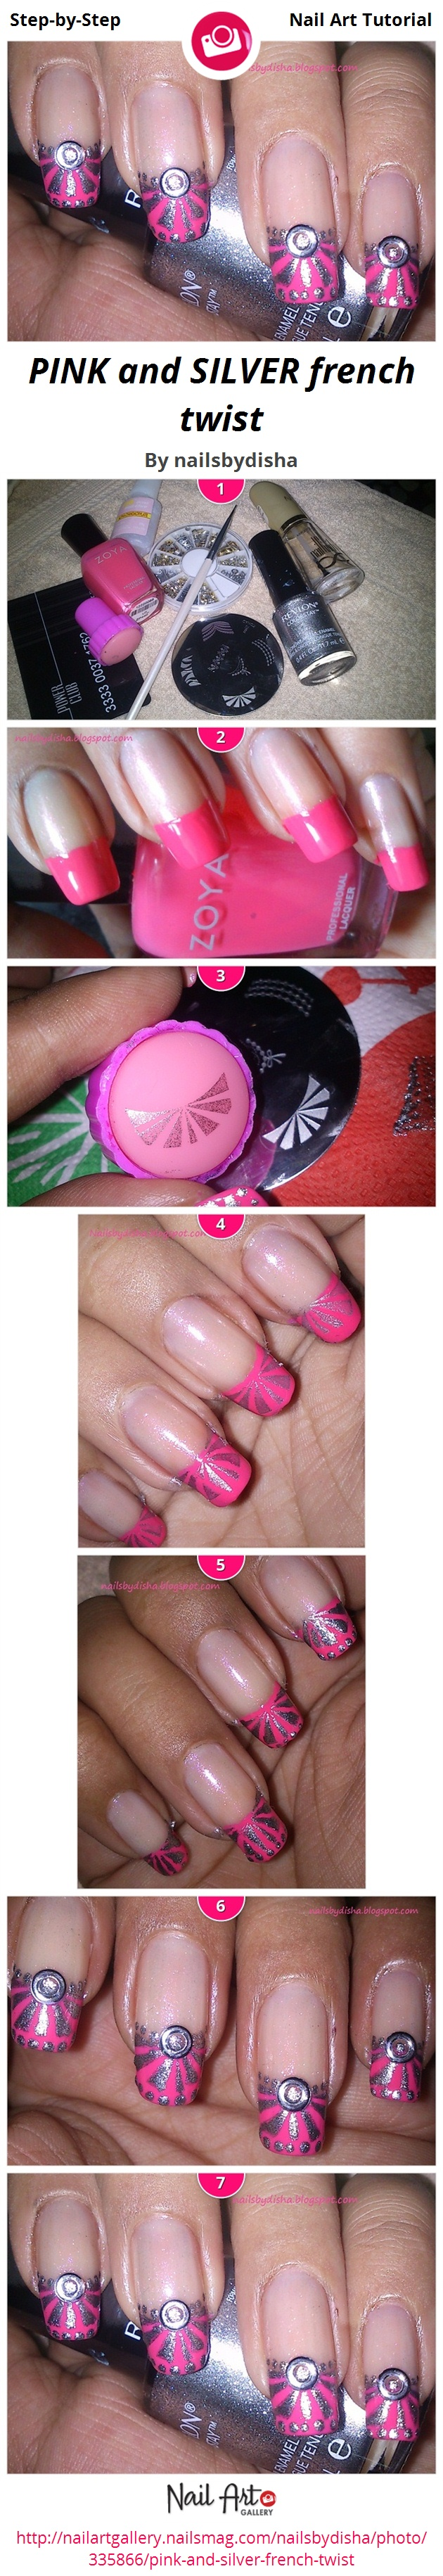 PINK and SILVER french twist - Nail Art Gallery